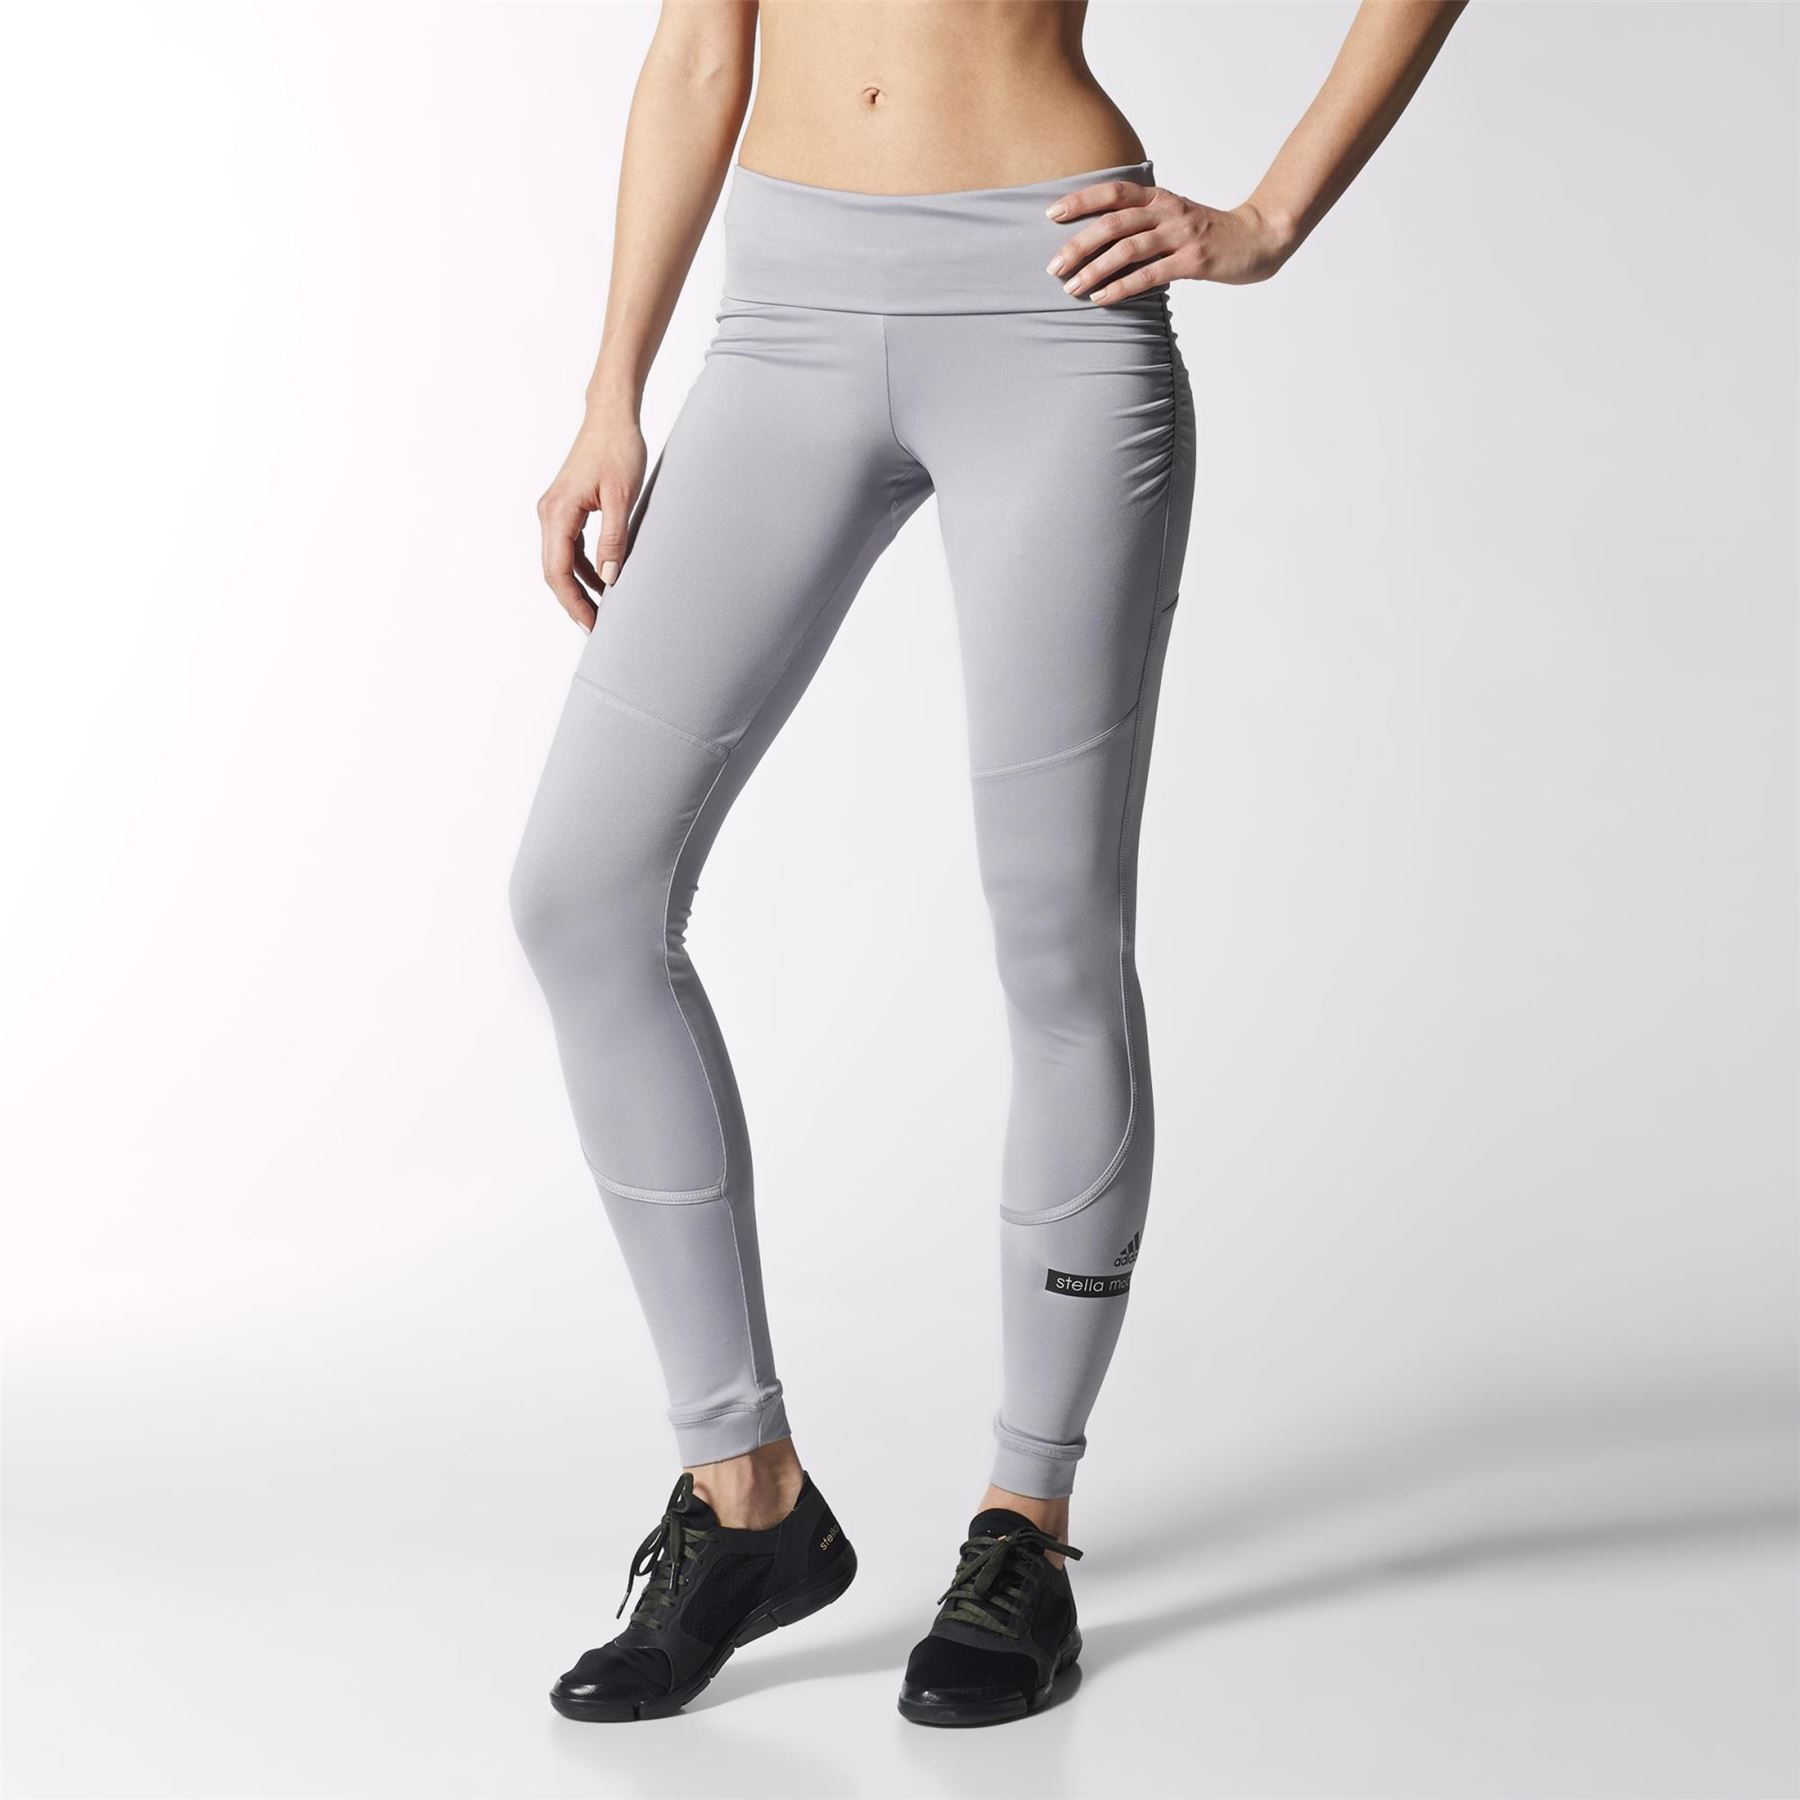 64c3705a2db60 Details about Adidas Women's Original Stella McCartney Fitness Leggings for  Yoga - GREY LARGE